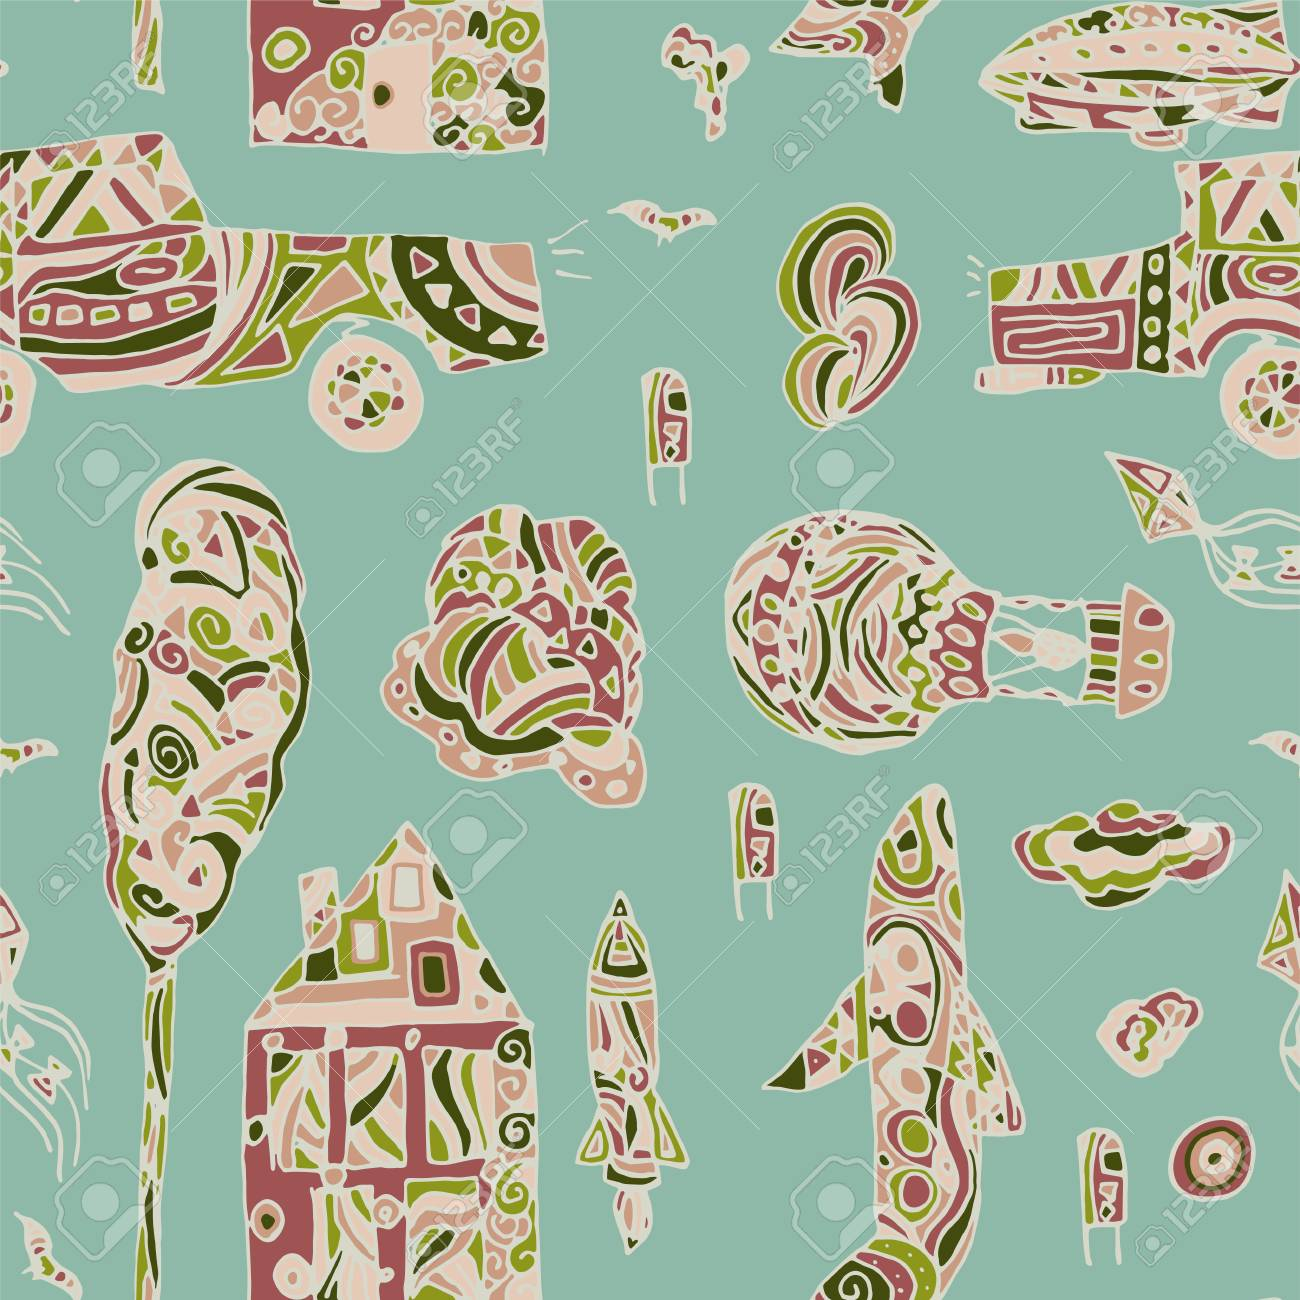 Doodle Hand Drawn Town Seamless Pattern Pastel Abstract Wallpaper Vector Illustration For Your Cute